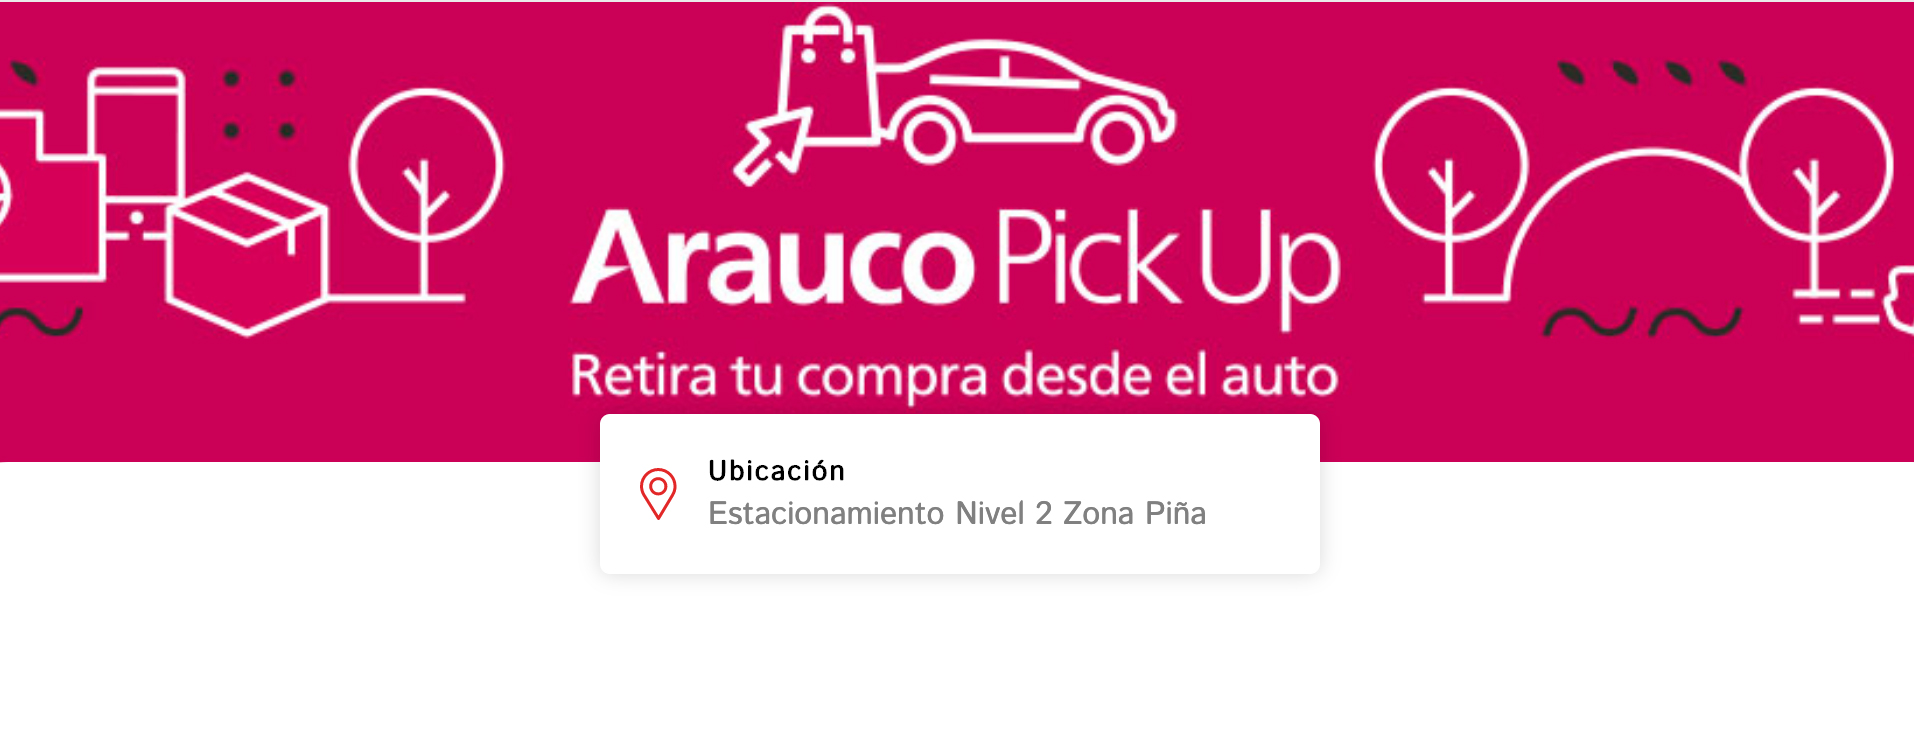 Parque Arauco_arauco pick up